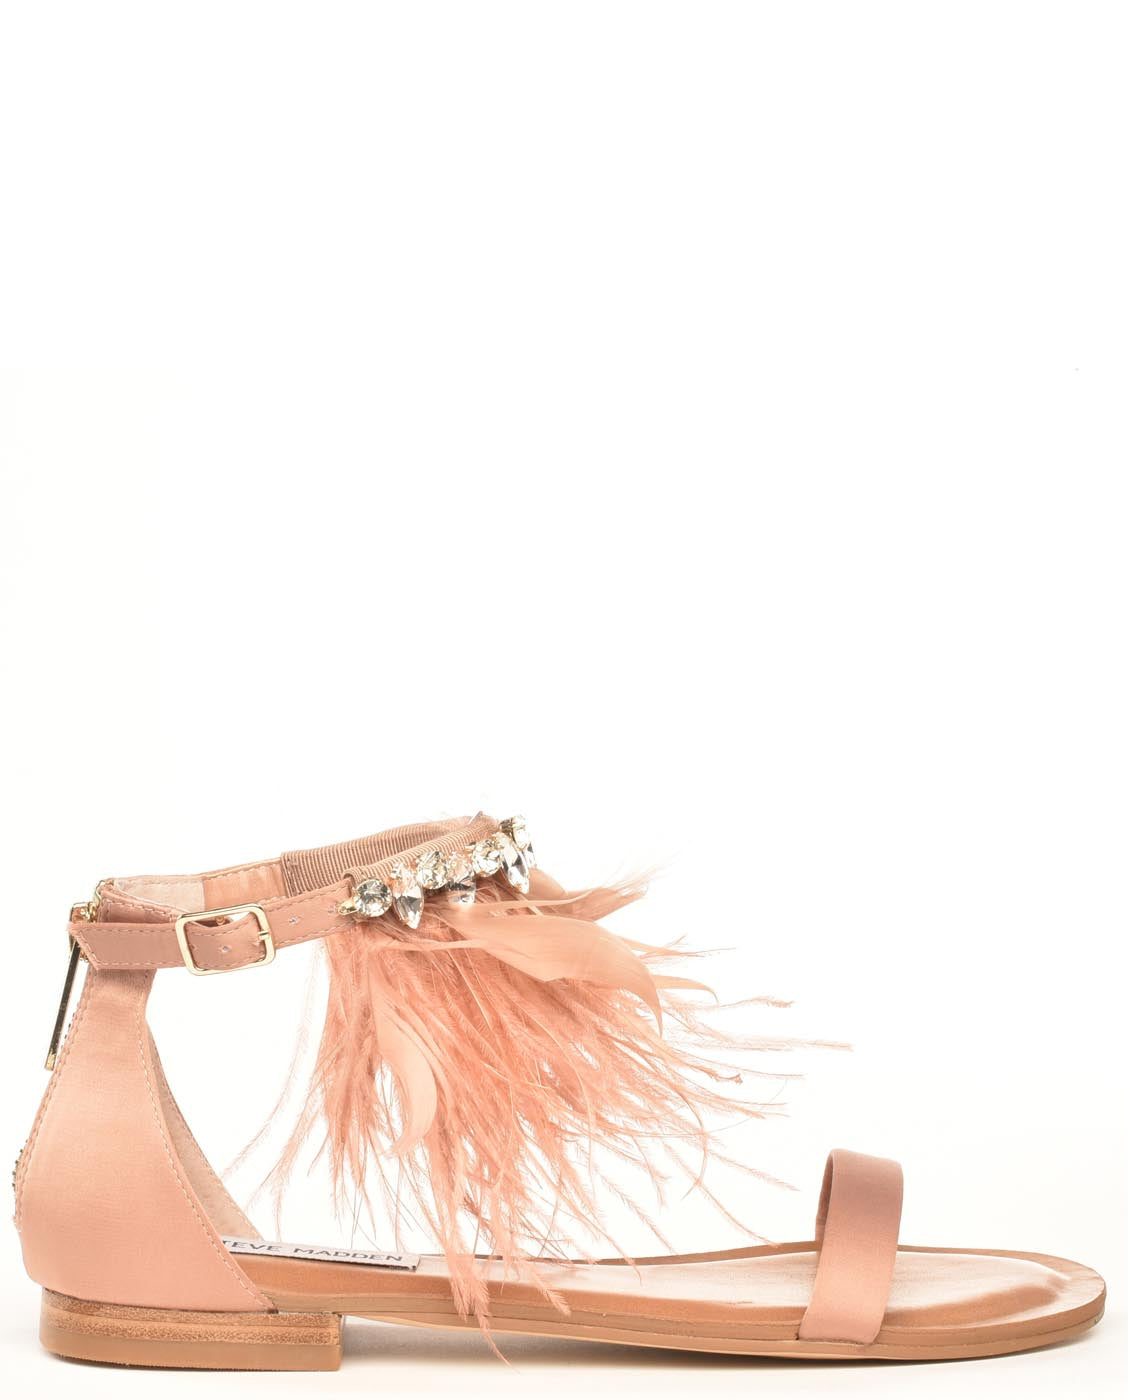 7cda7b5eb38d Steve Madden Feather Adore Sandals - Fashion You Up